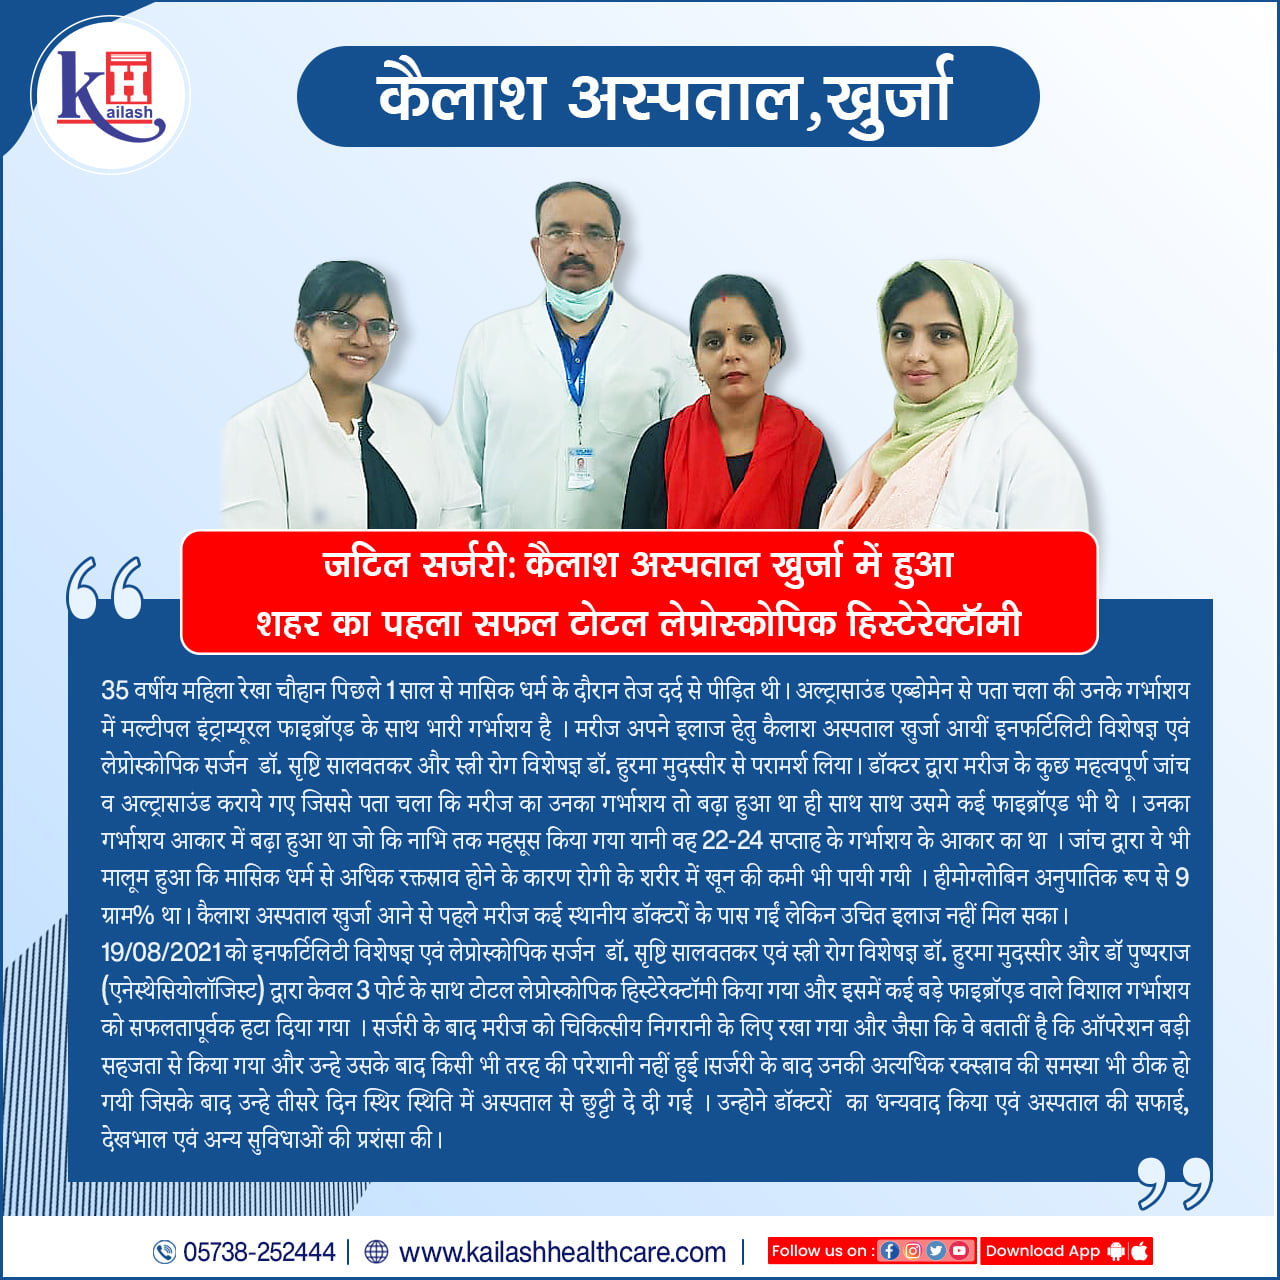 First time in Khurja: Total Laparoscopic Hysterectomy successfully done at Kailash Hospital Khurja